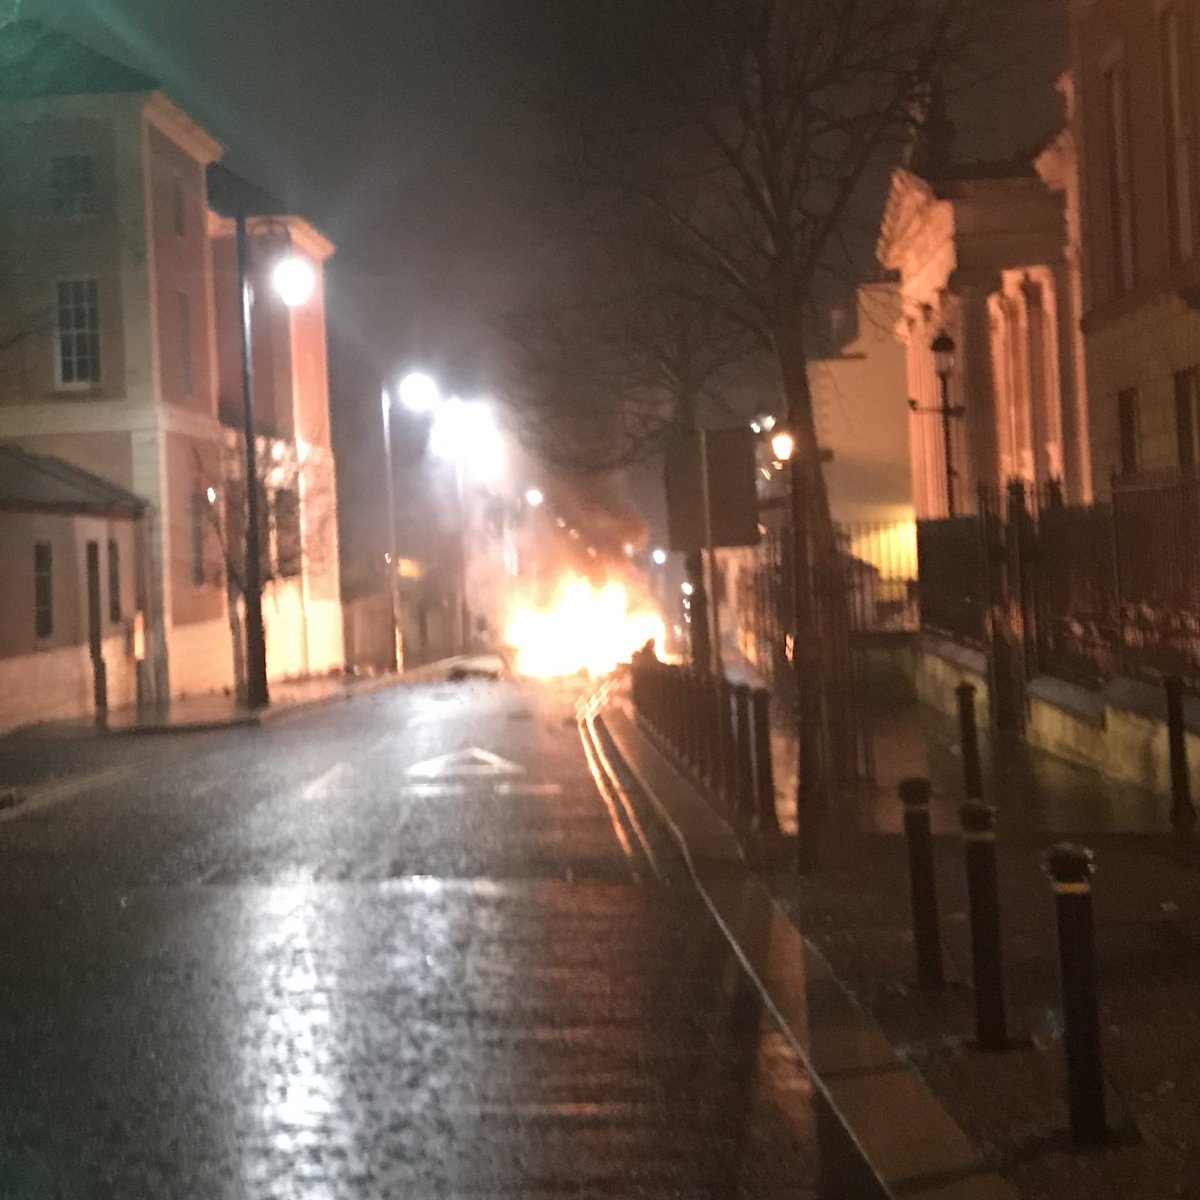 Police investigate 'car bomb' after Derry explosion